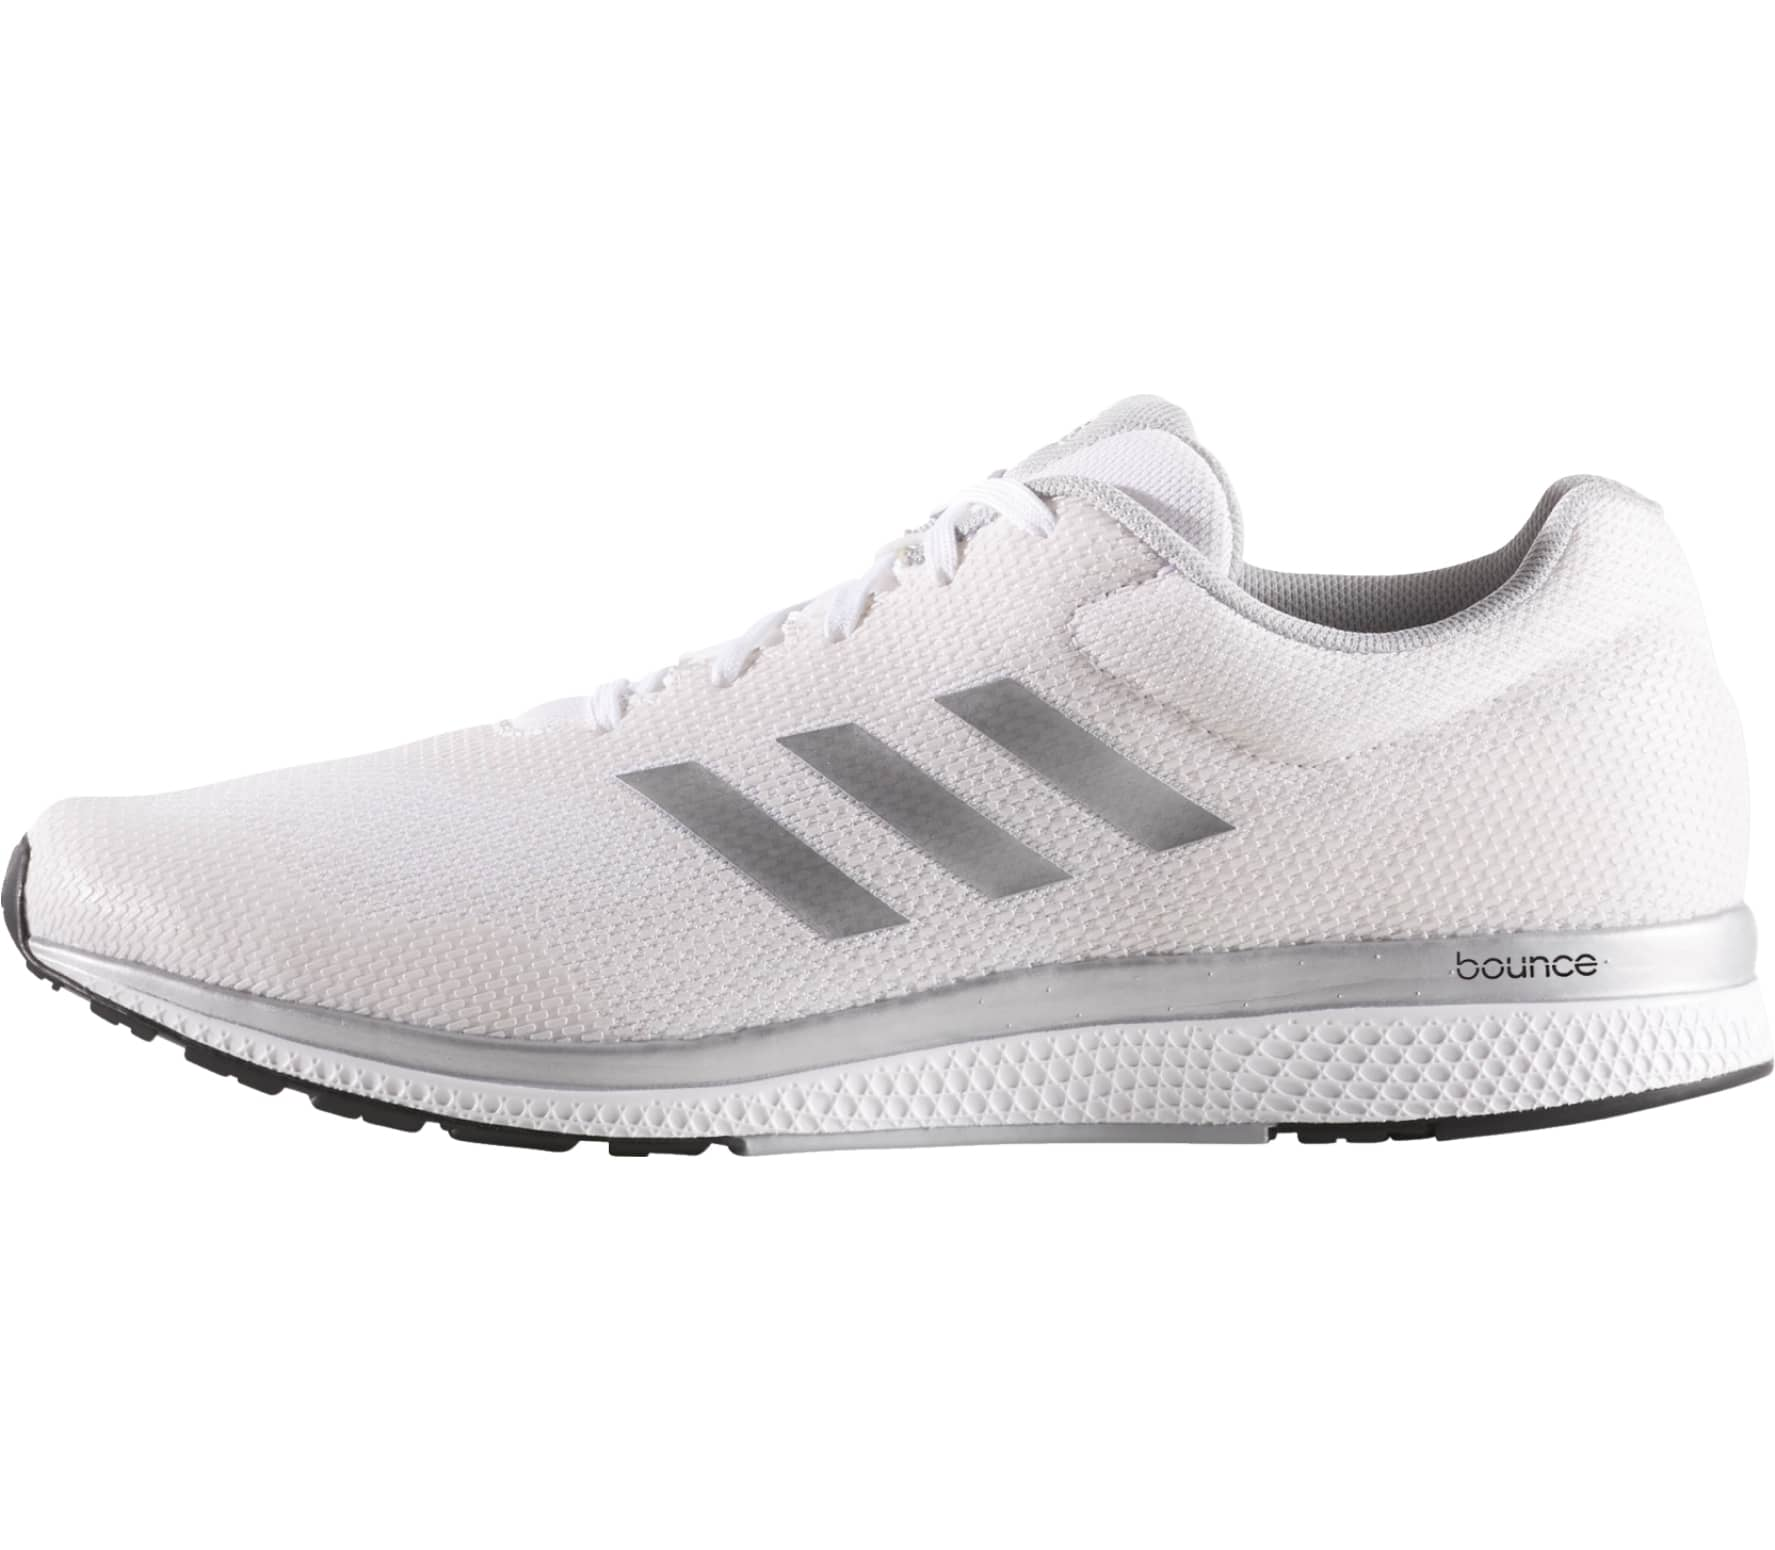 d59138008 Adidas - Mana Bounce 2 Aramis men s running shoes (white silver ...